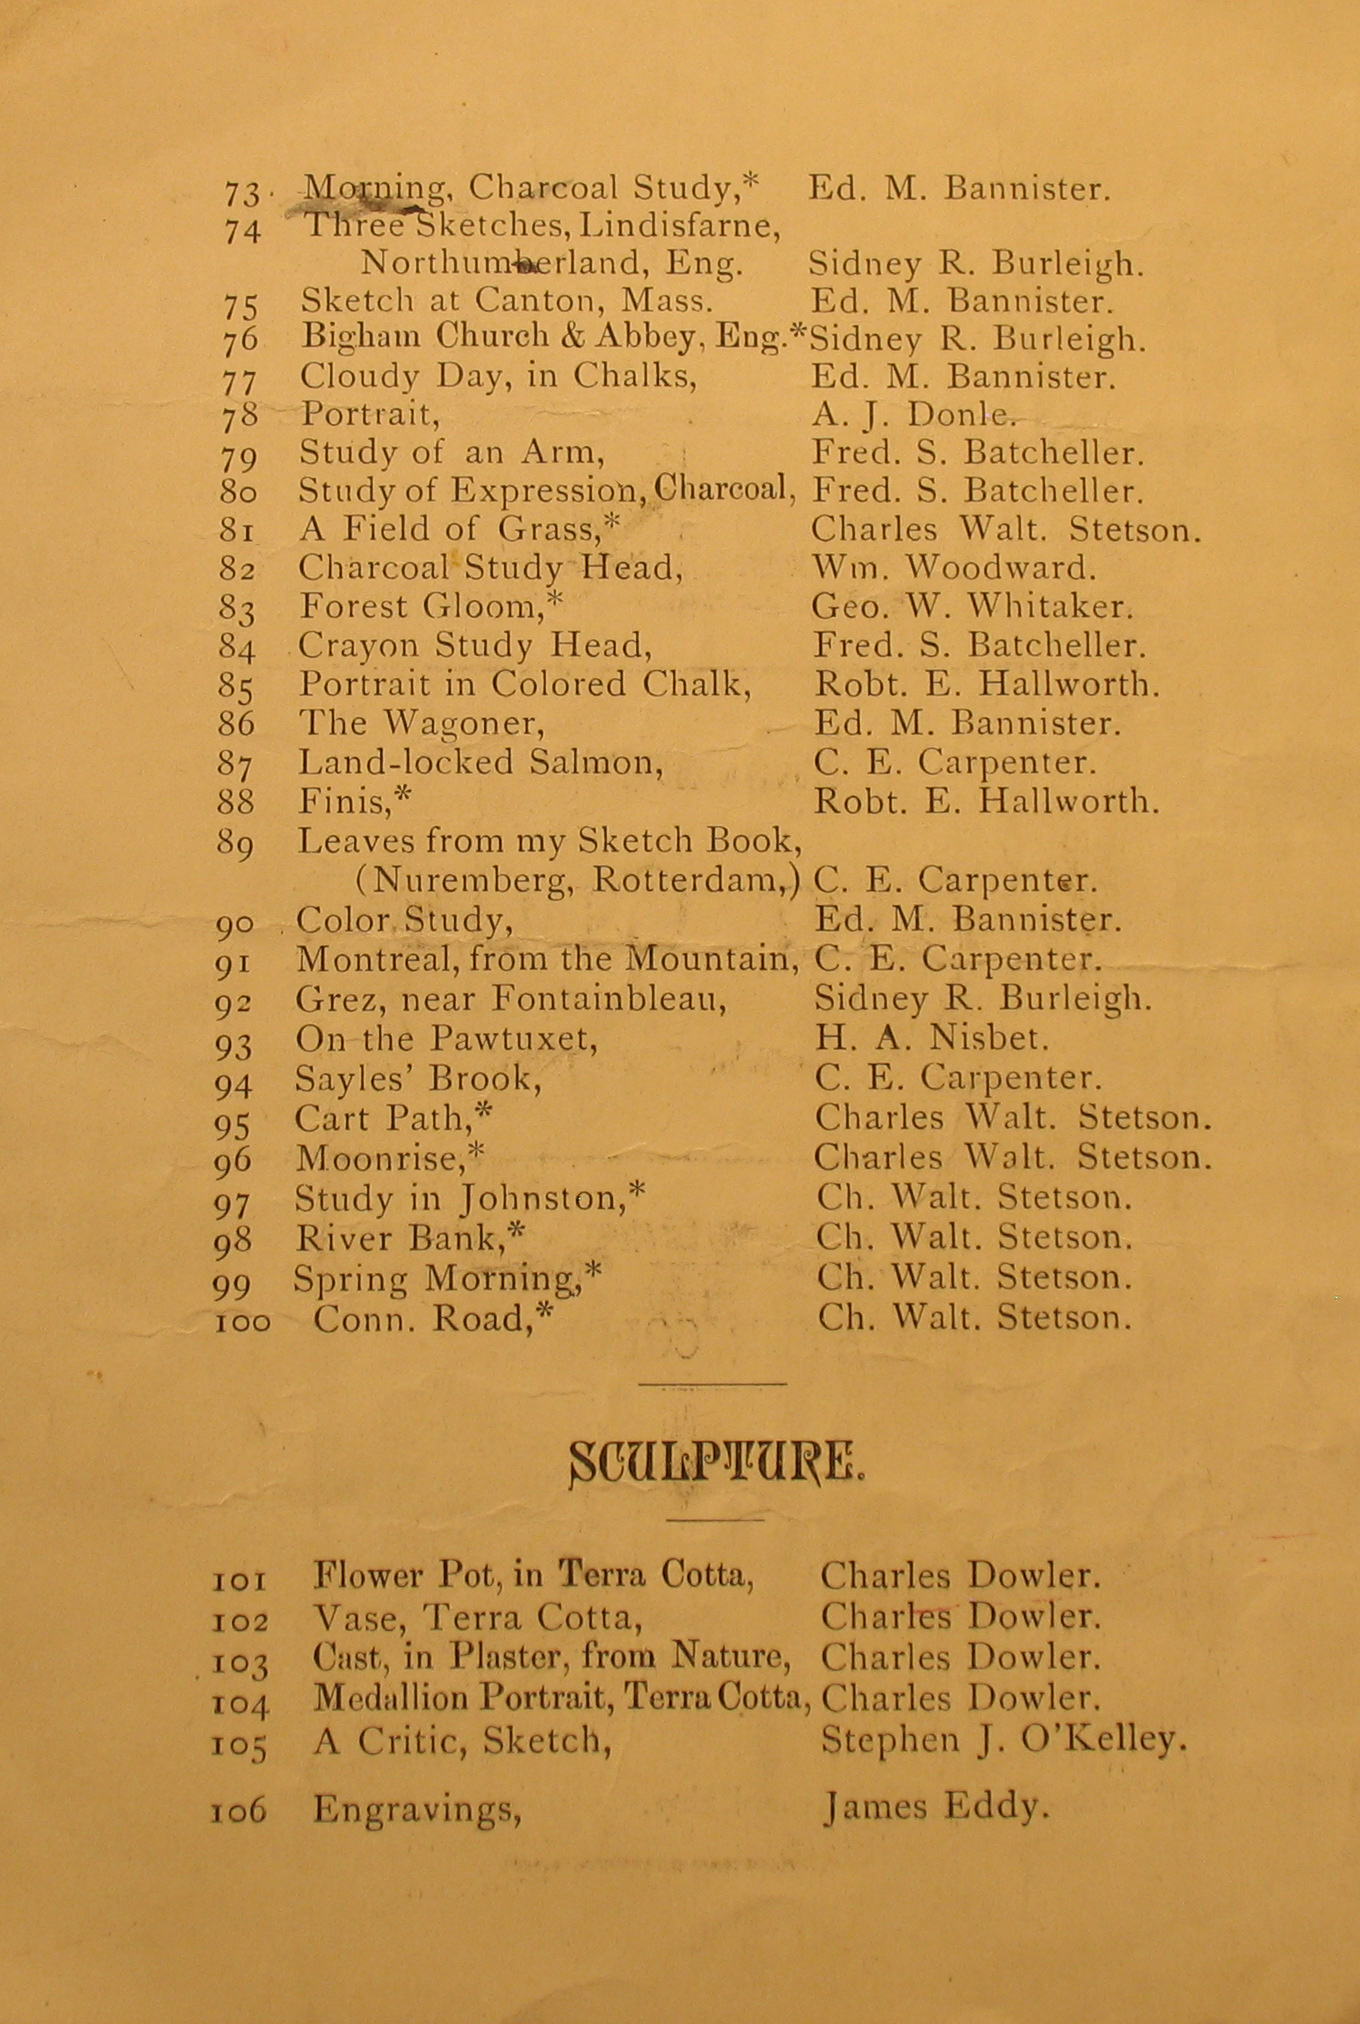 Providence Art Club Catalogue for Dec. 1, 1880, page 3